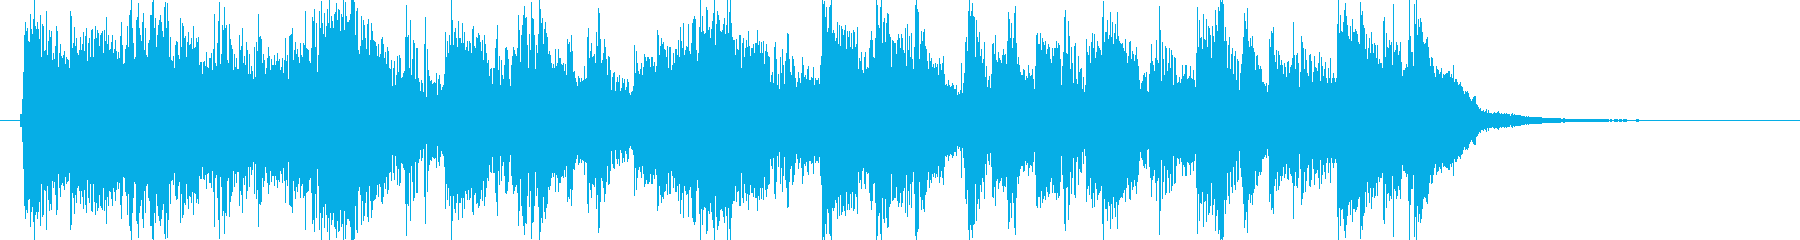 Rock and roll, guitar, energy, jingle's reproduced waveform